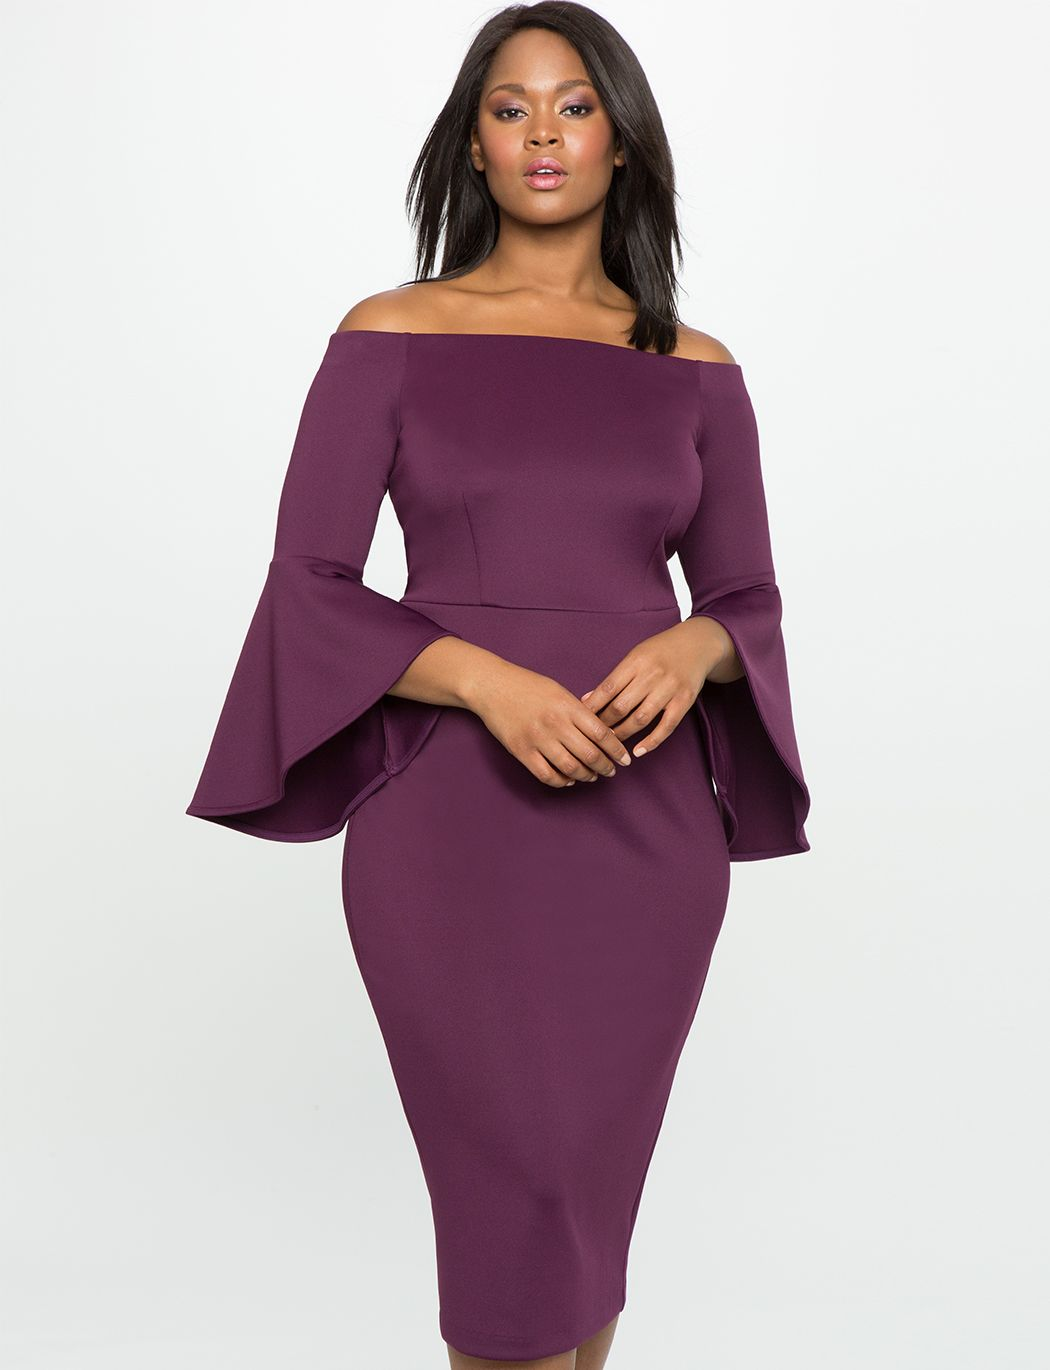 194211e104 Studio Off the Shoulder Flare Sleeve Dress